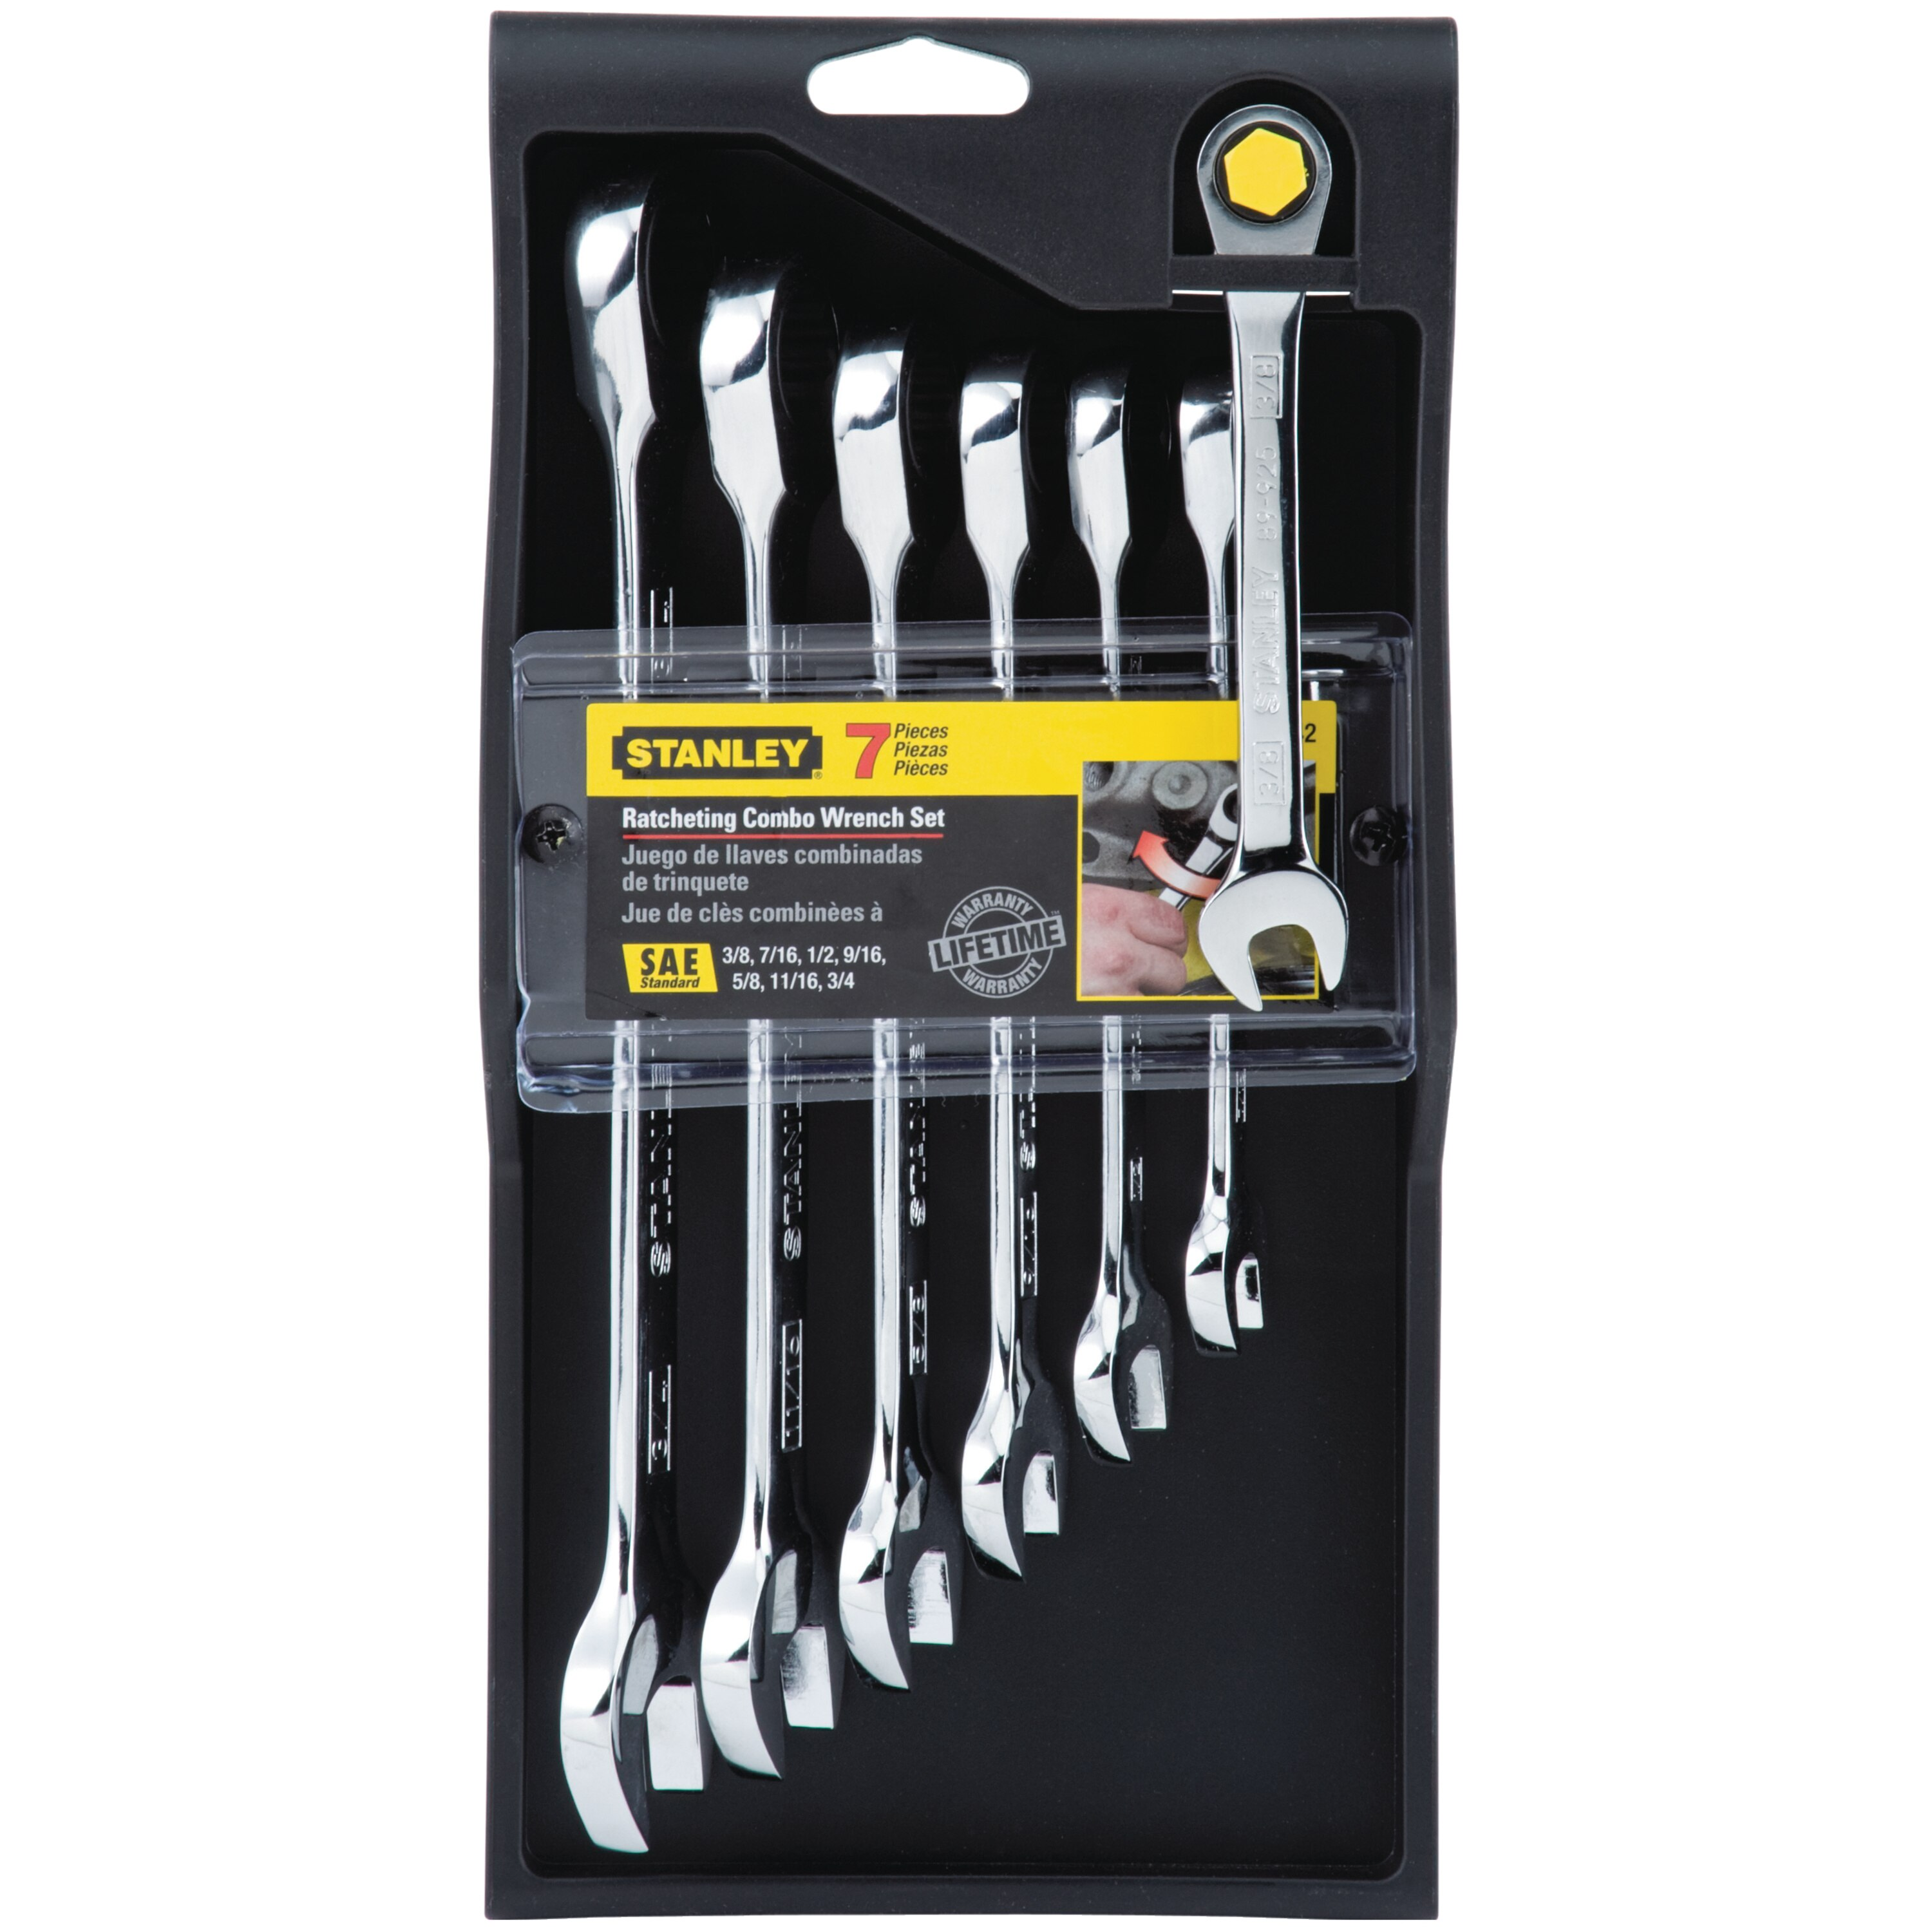 Stanley Tools - 7 pc Ratcheting Combination Wrench SAE Set - 94-542W